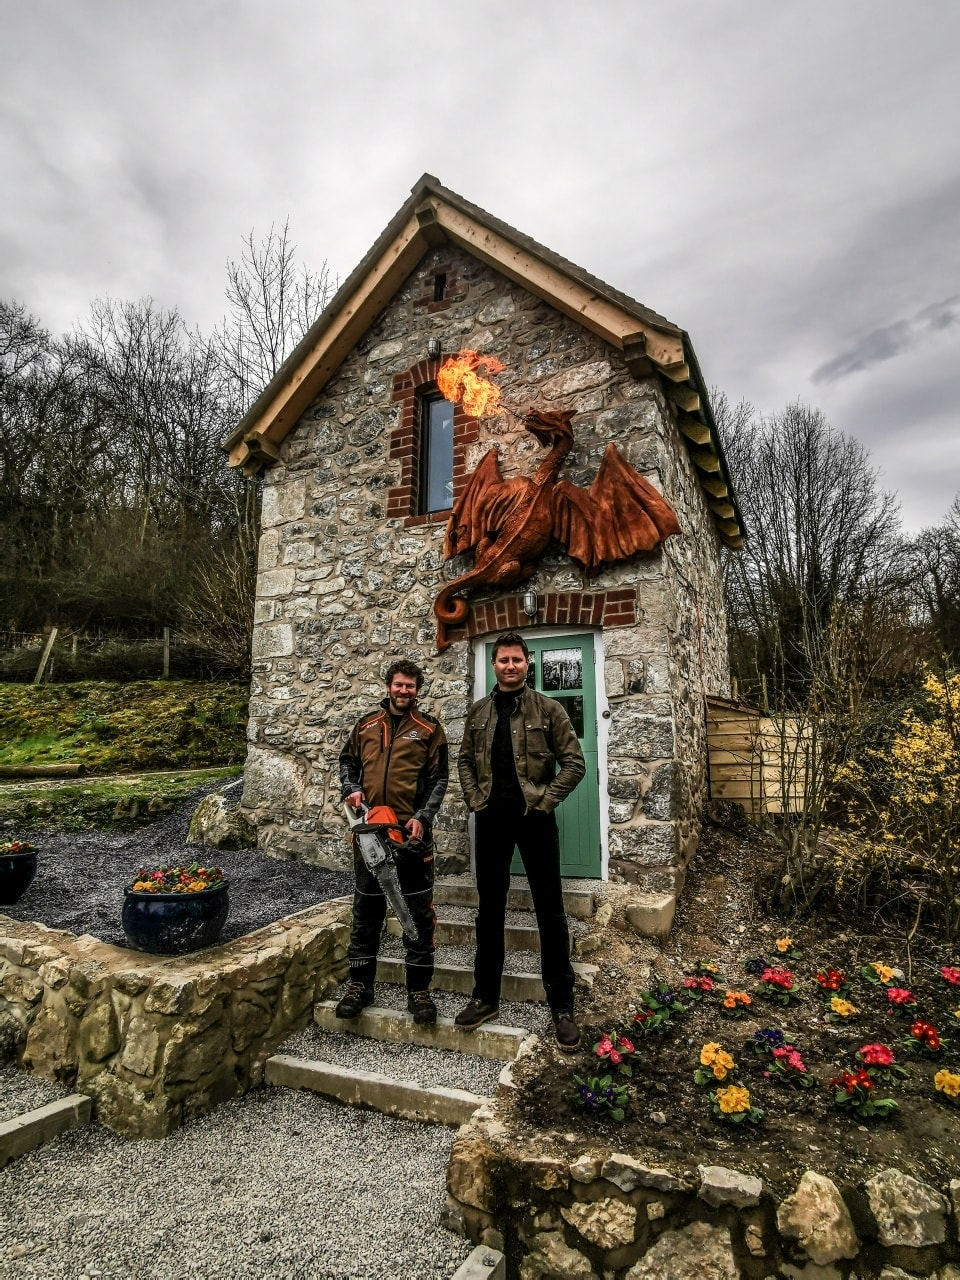 george clark stands next to sculpter simon o'rourke. they are in front of a small brick building with a redwood fire breathing dragon mounted on the wall. the dragon is made of redwood and was one of simon's sculptures of 2020